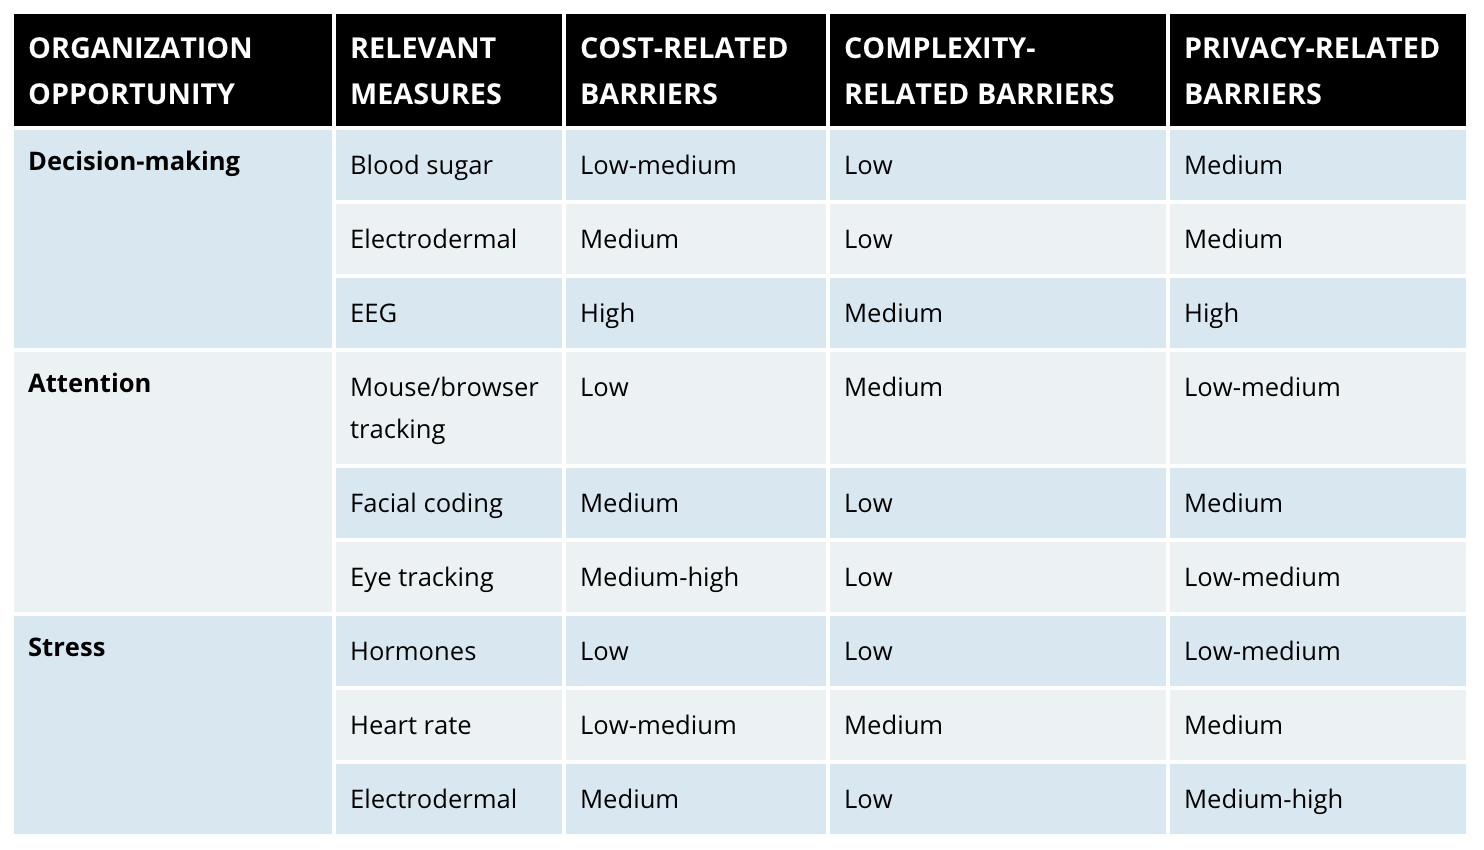 Figure 6:   Implementation Barriers for Emotion-Sensing Technologies - Multiple measures are available to appraise stress, attention, and decision-making. Each presents different cost-, complexity-, and privacy-related barriers (Source: MIT Sloan Management Review)